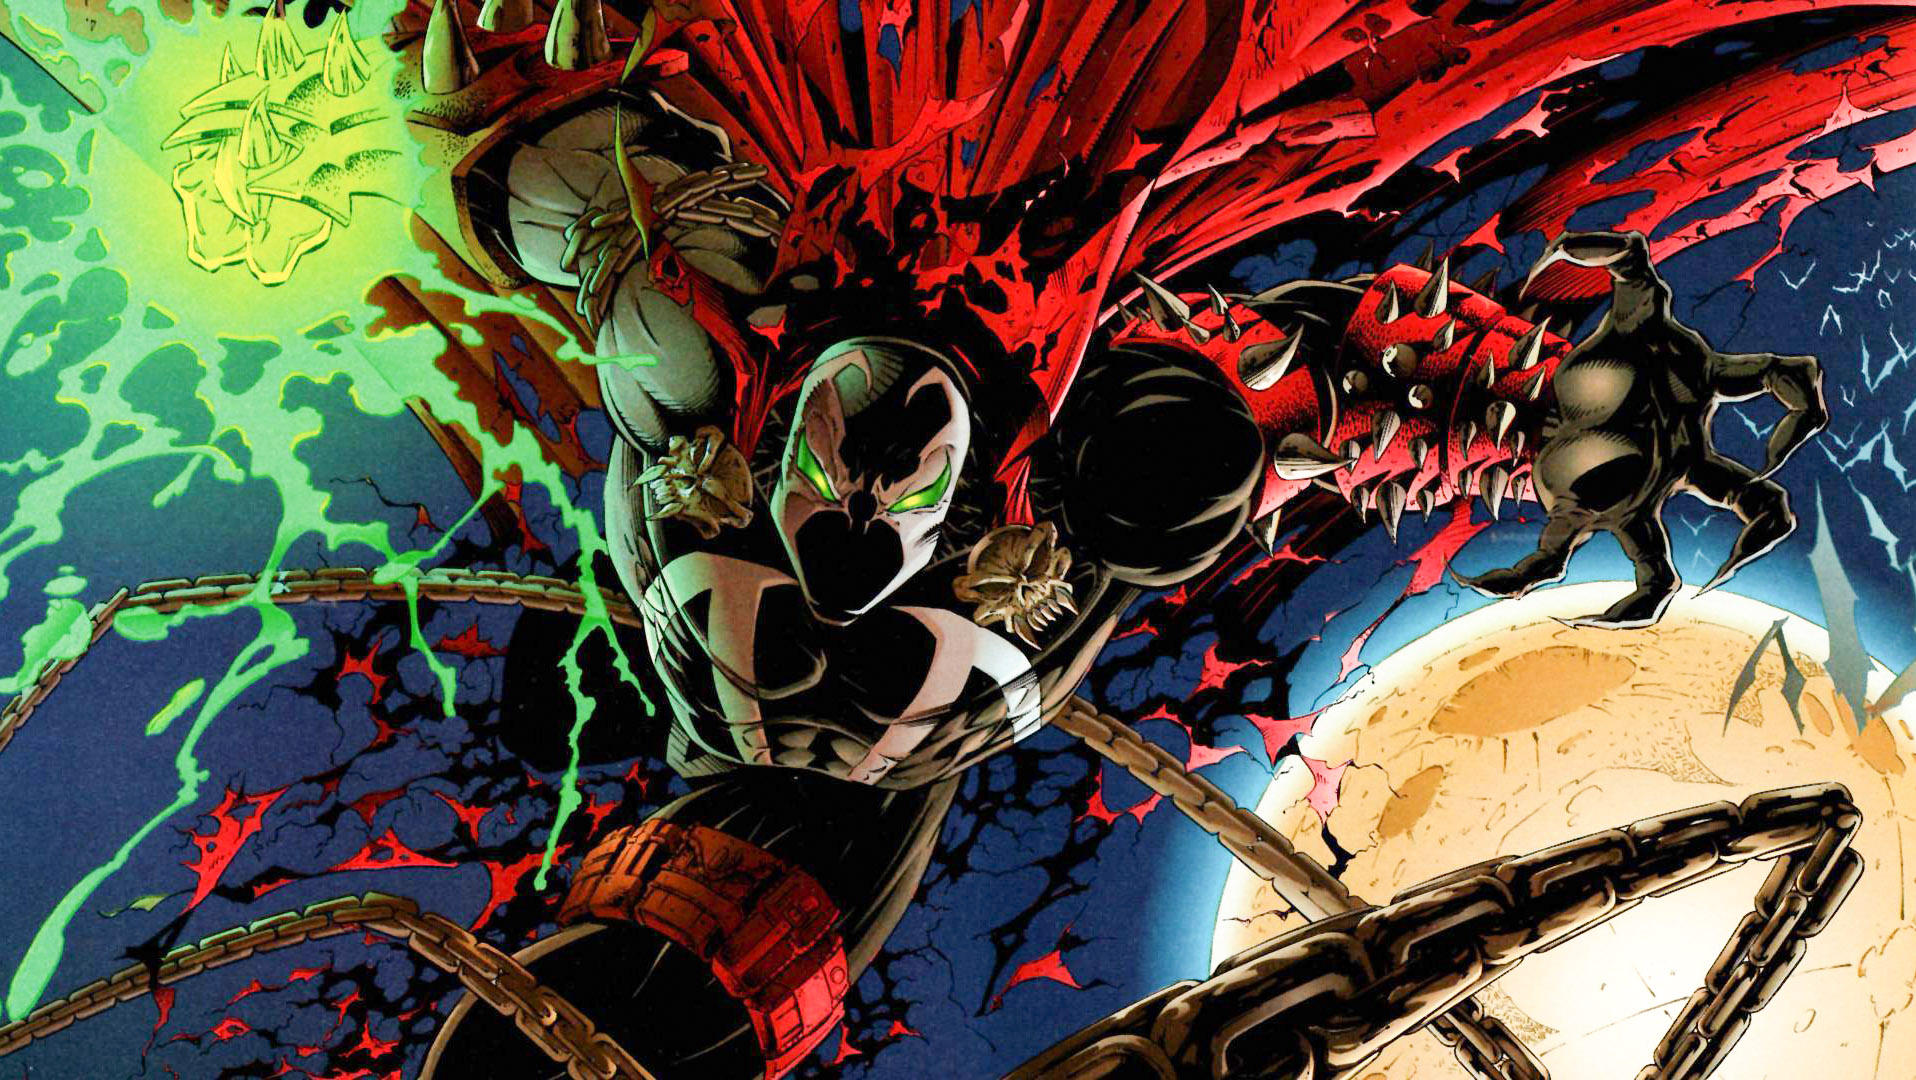 Jamie Foxx will play Spawn, upgrading his comic roles from The Abysmal Spider-Man